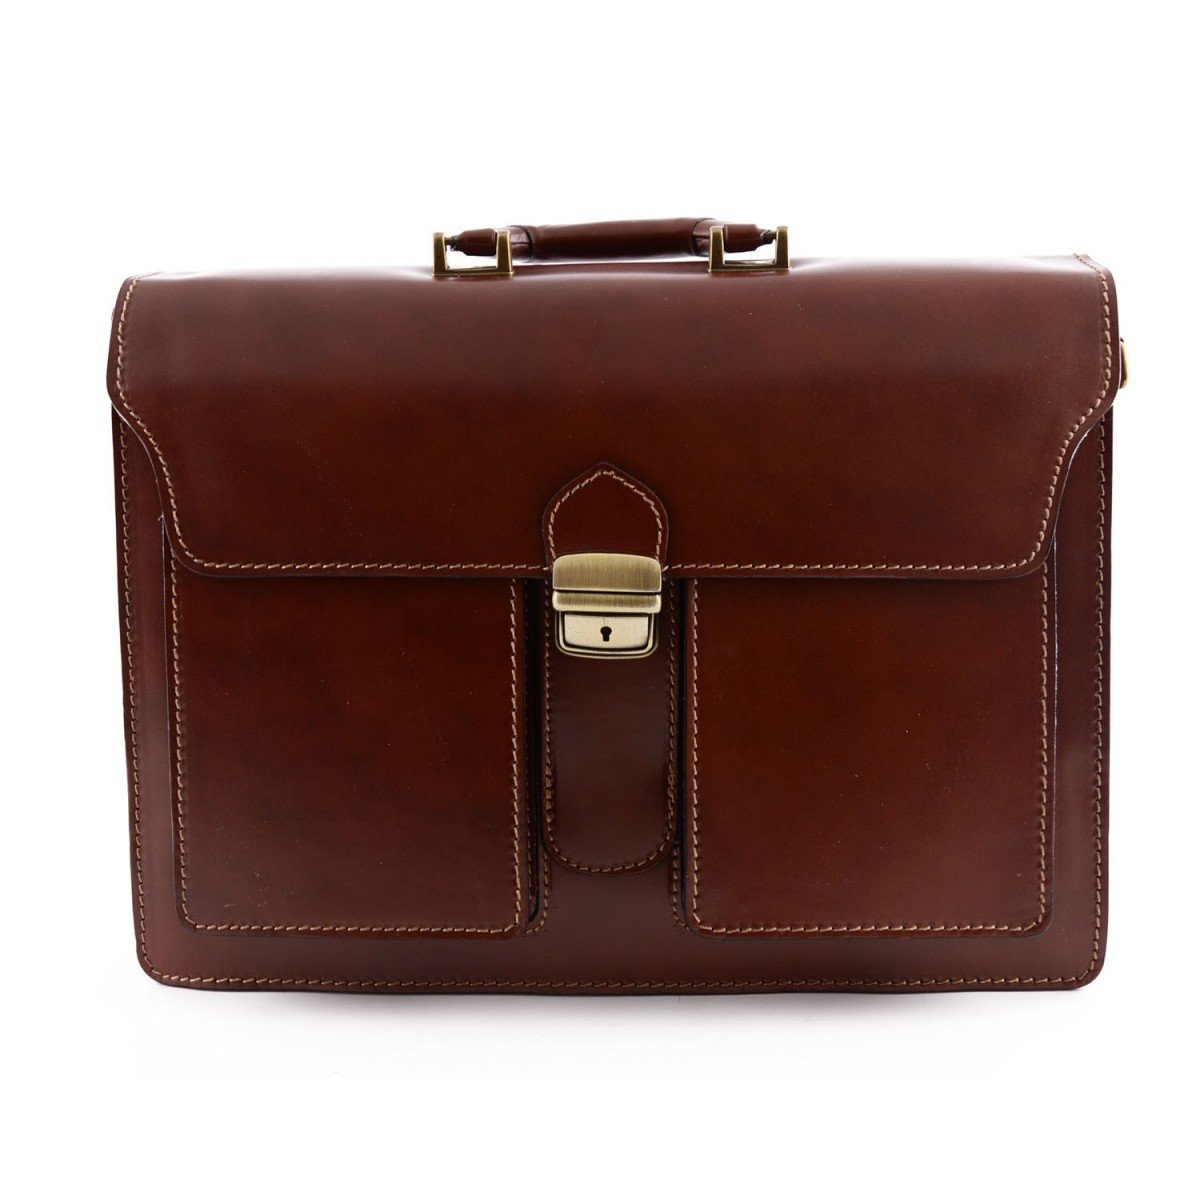 Made In Italy Genuine Leather Professional Briefcase 3 Compartments And 2 Pockets Color Brown - Business Bag B0177FAX1G